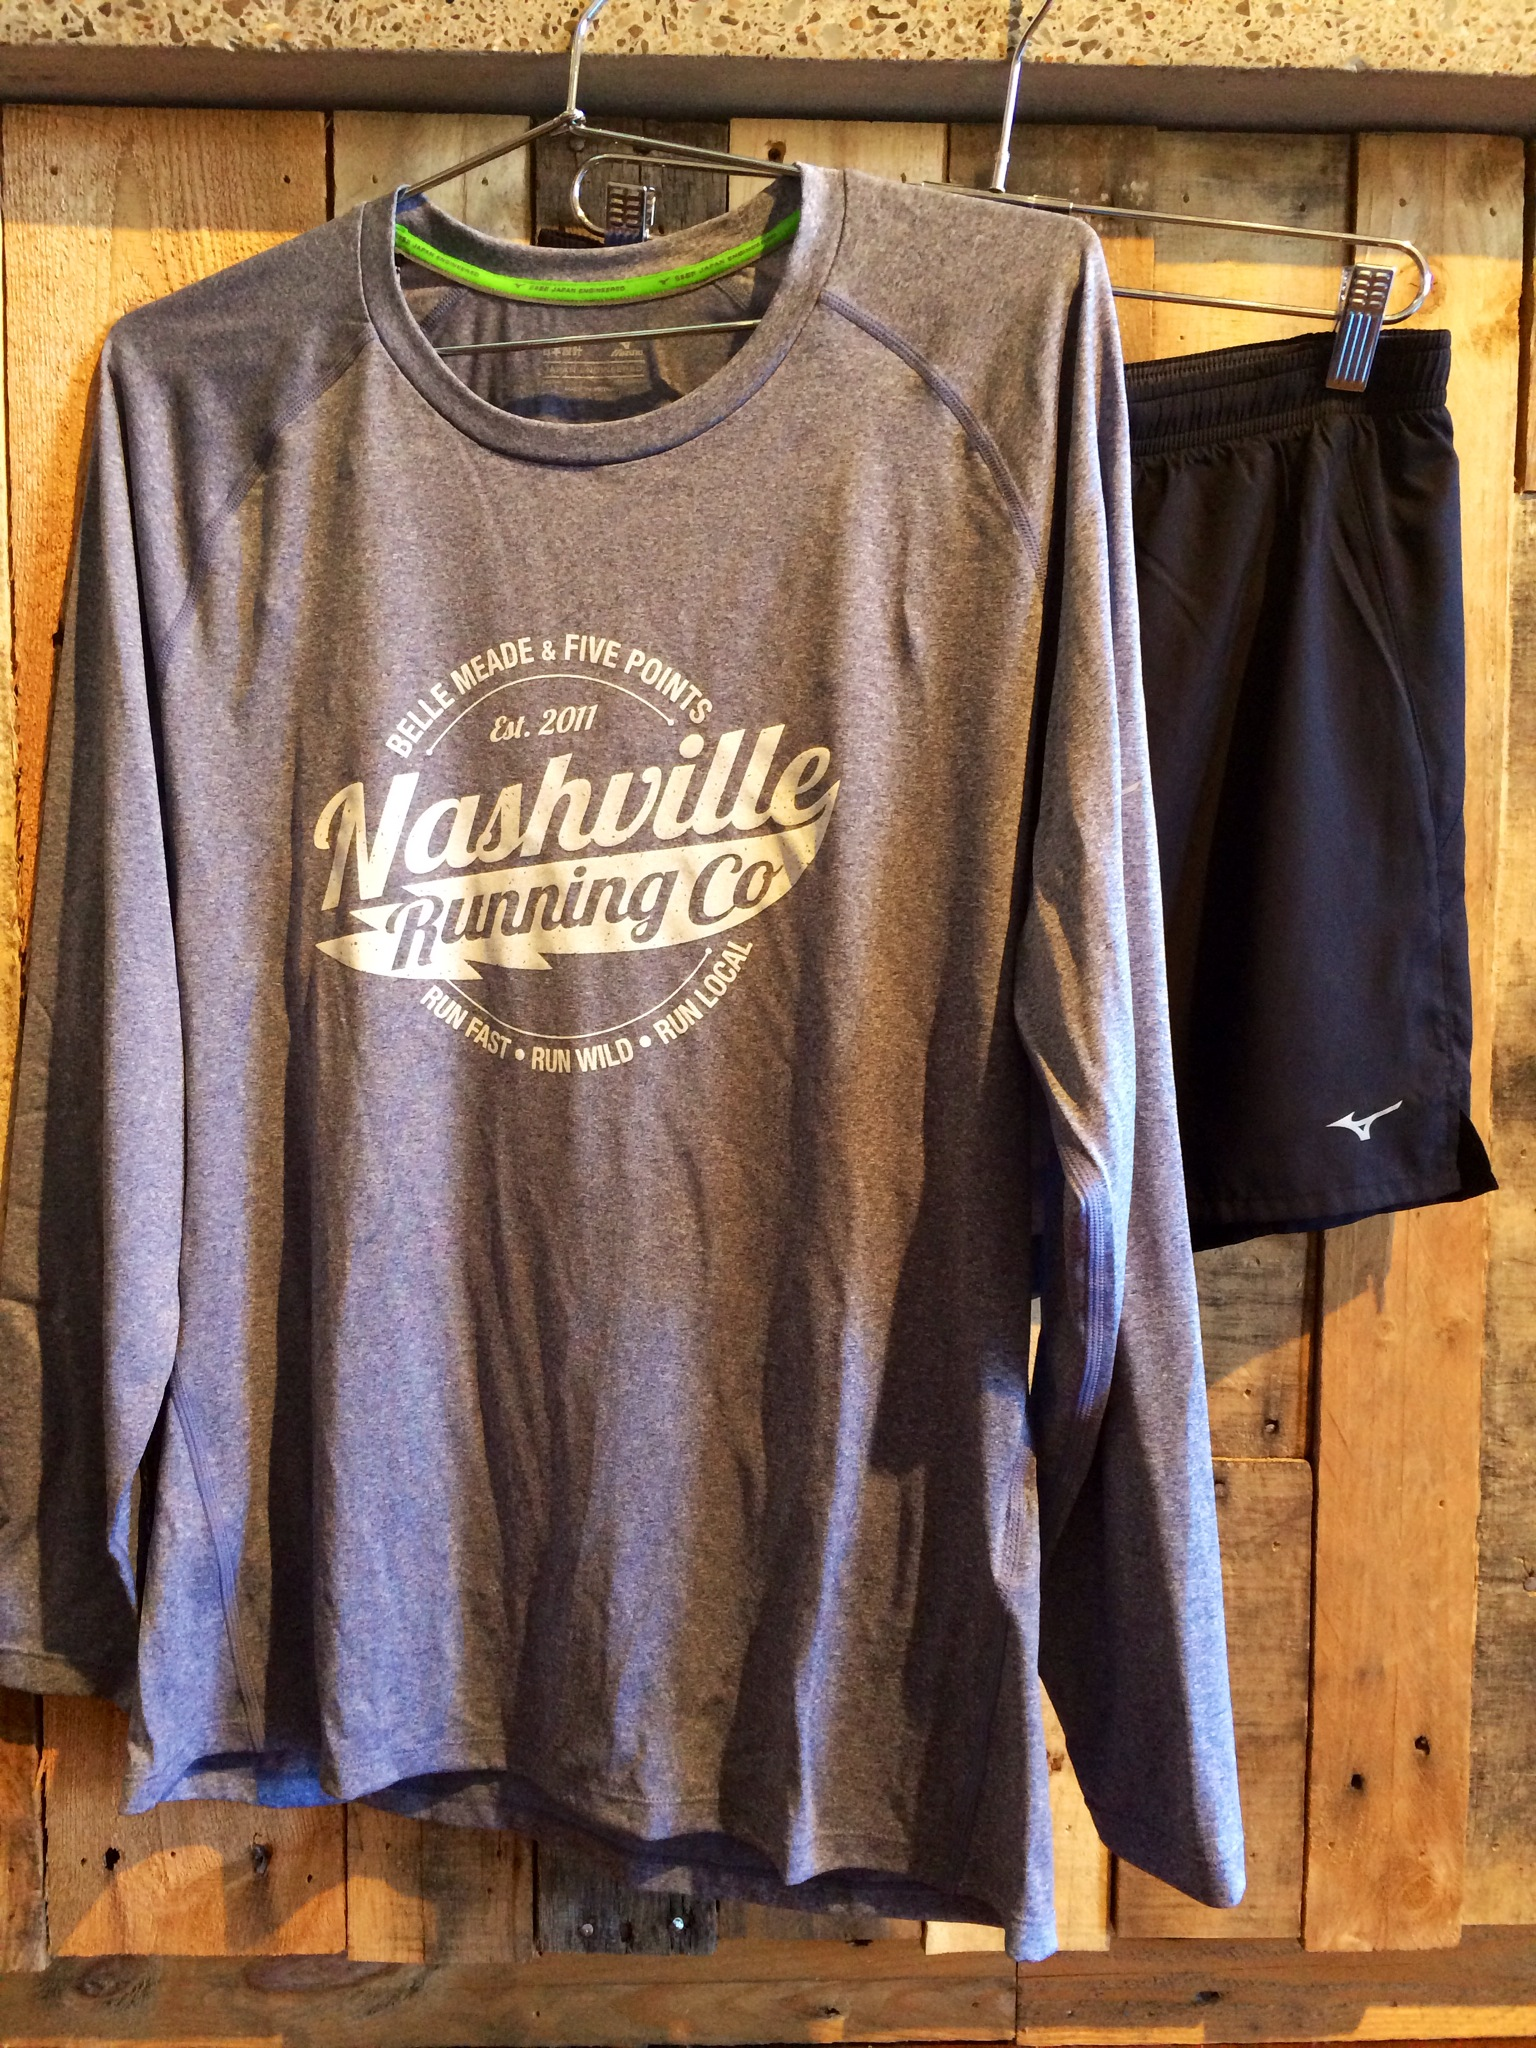 A simple long-sleeve t-shirt is great for warming up on a mild morning. Wear by itself or with a short-sleeve underneath.